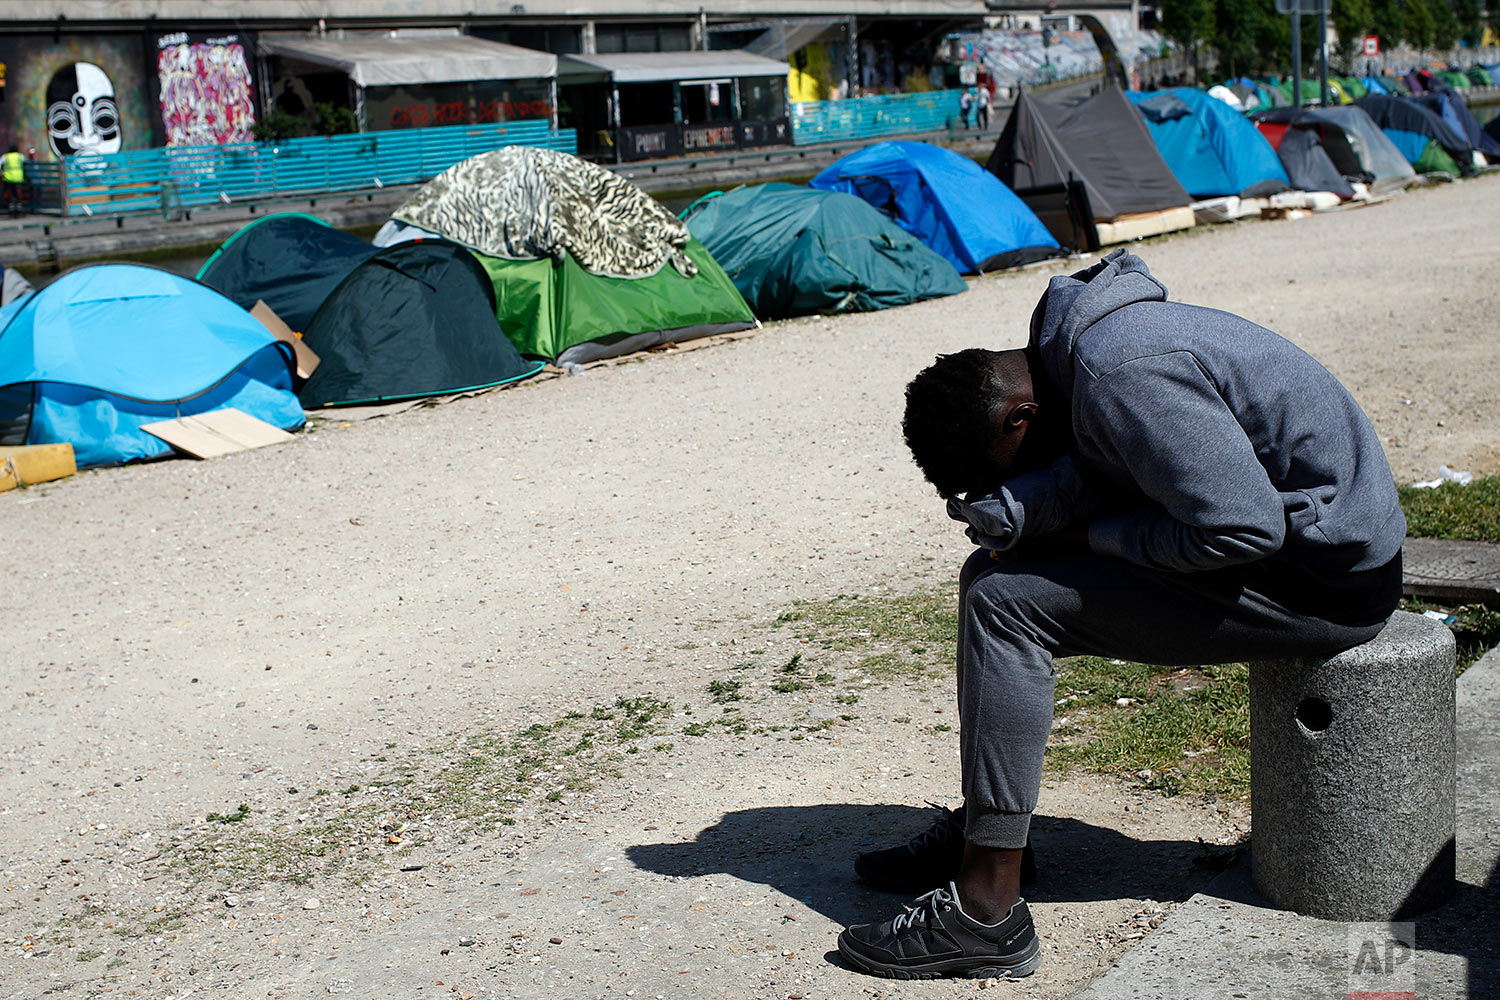 A migrant takes a nap near tents where asylum seekers have set up a makeshift camp alongside the Canal Saint-Martin, in Paris, Friday, May 18, 2018. (AP Photo/Francois Mori)